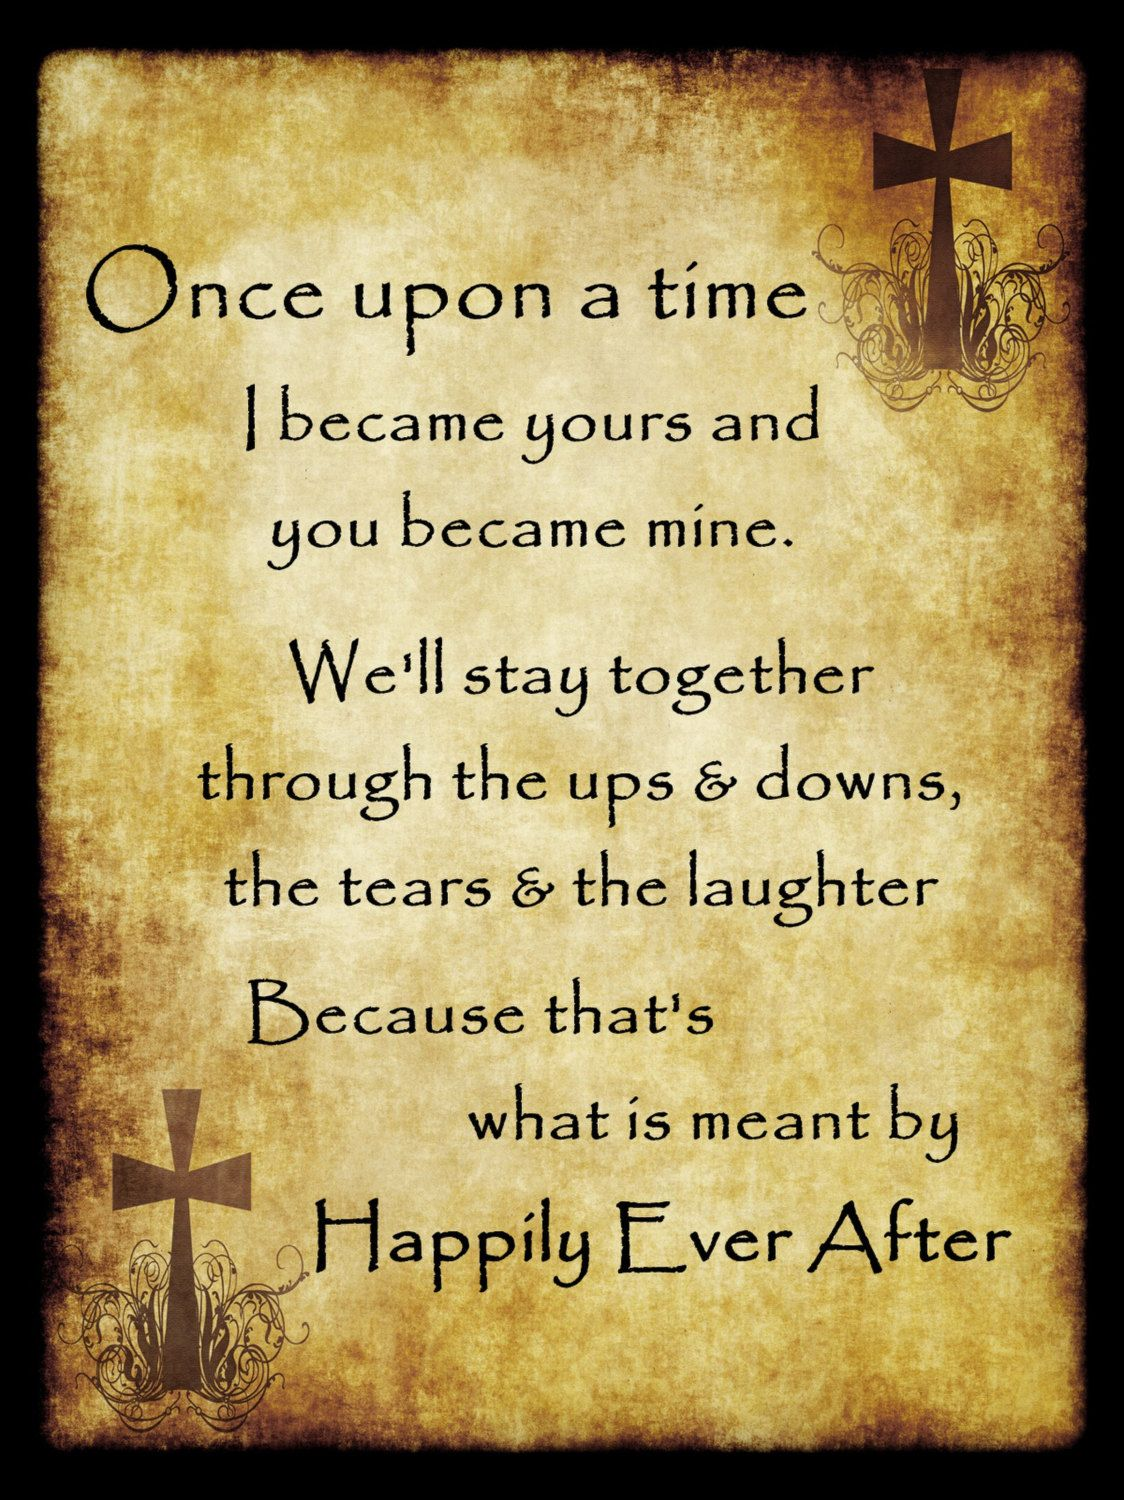 Happily Ever After Newlywed Vow Poster, Engaged Couple Oath Wall Art ...